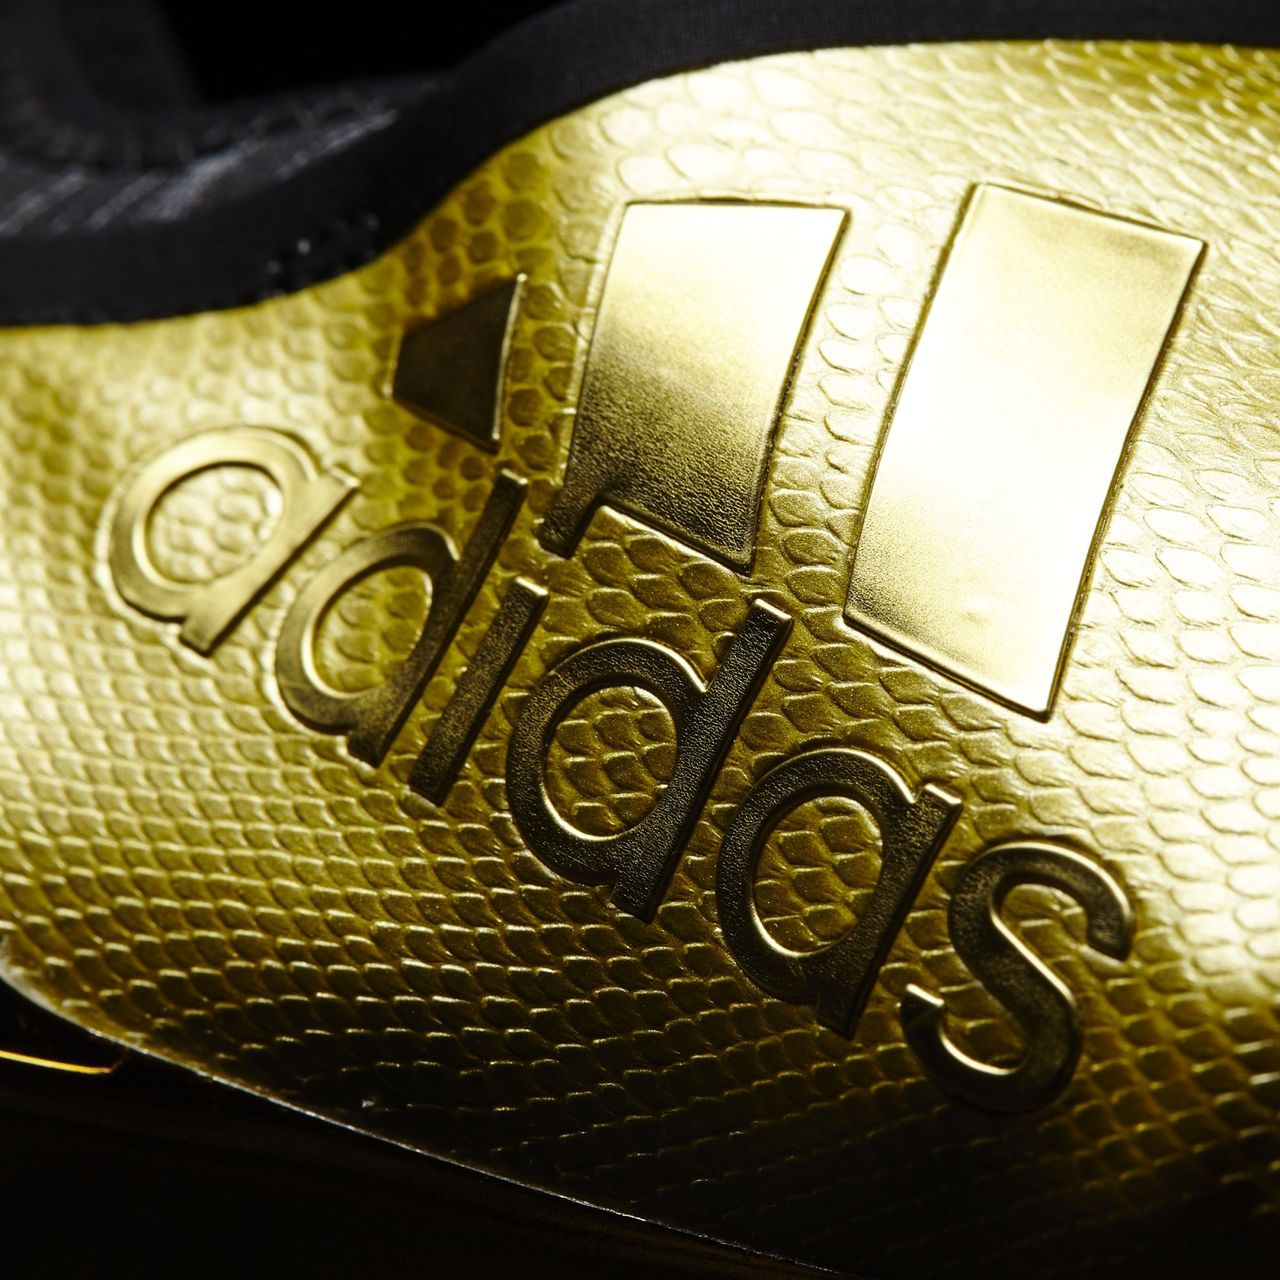 59ac6d5f0 ... Click to enlarge image  adidas_x_16_purechaos_fg_ag_space_craft_gold-metallic_f.jpg ...